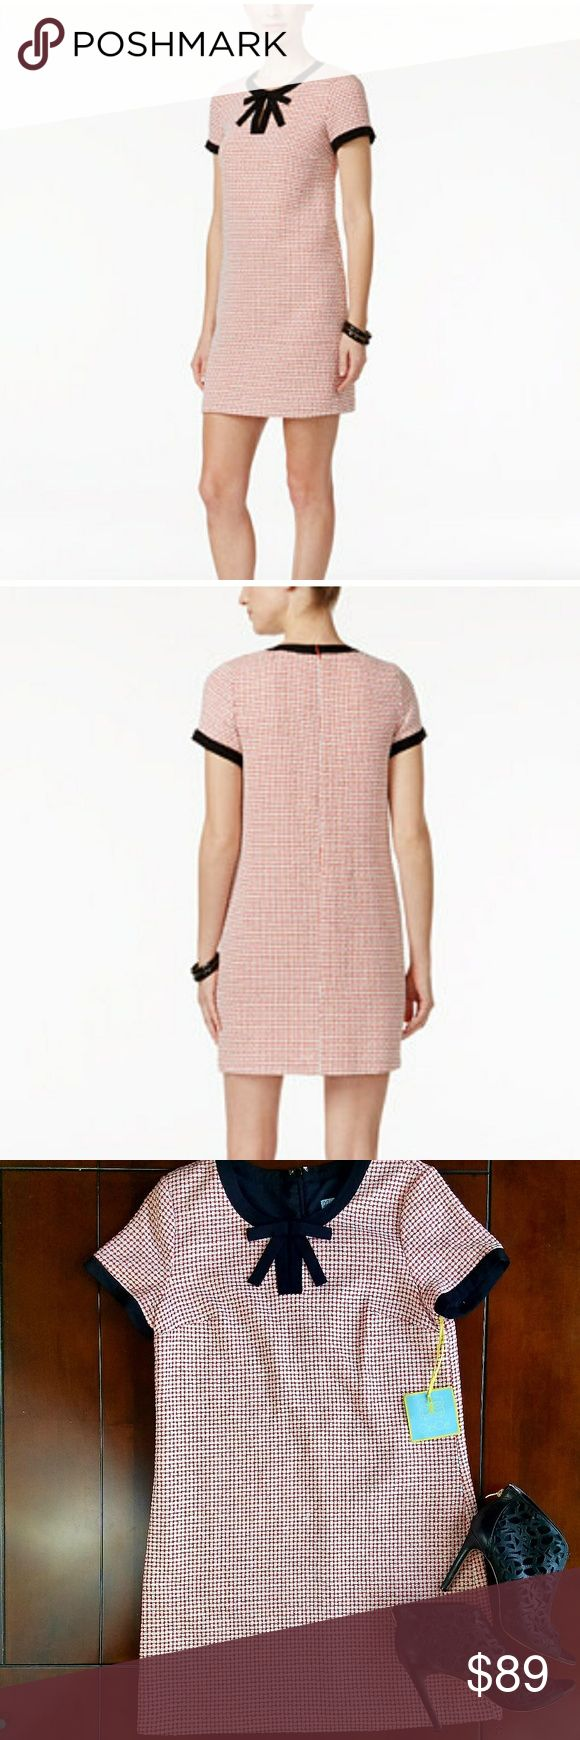 NWT Tweed Shift Dress with Bow Cece sz 12 Available NWT Cece tweed shift dress features high neckline witj bow detail and keyhole. Back zipper closure. Short sleeves. Lined. Hits above knee. Dry clean. Cynthia Steffe Dresses